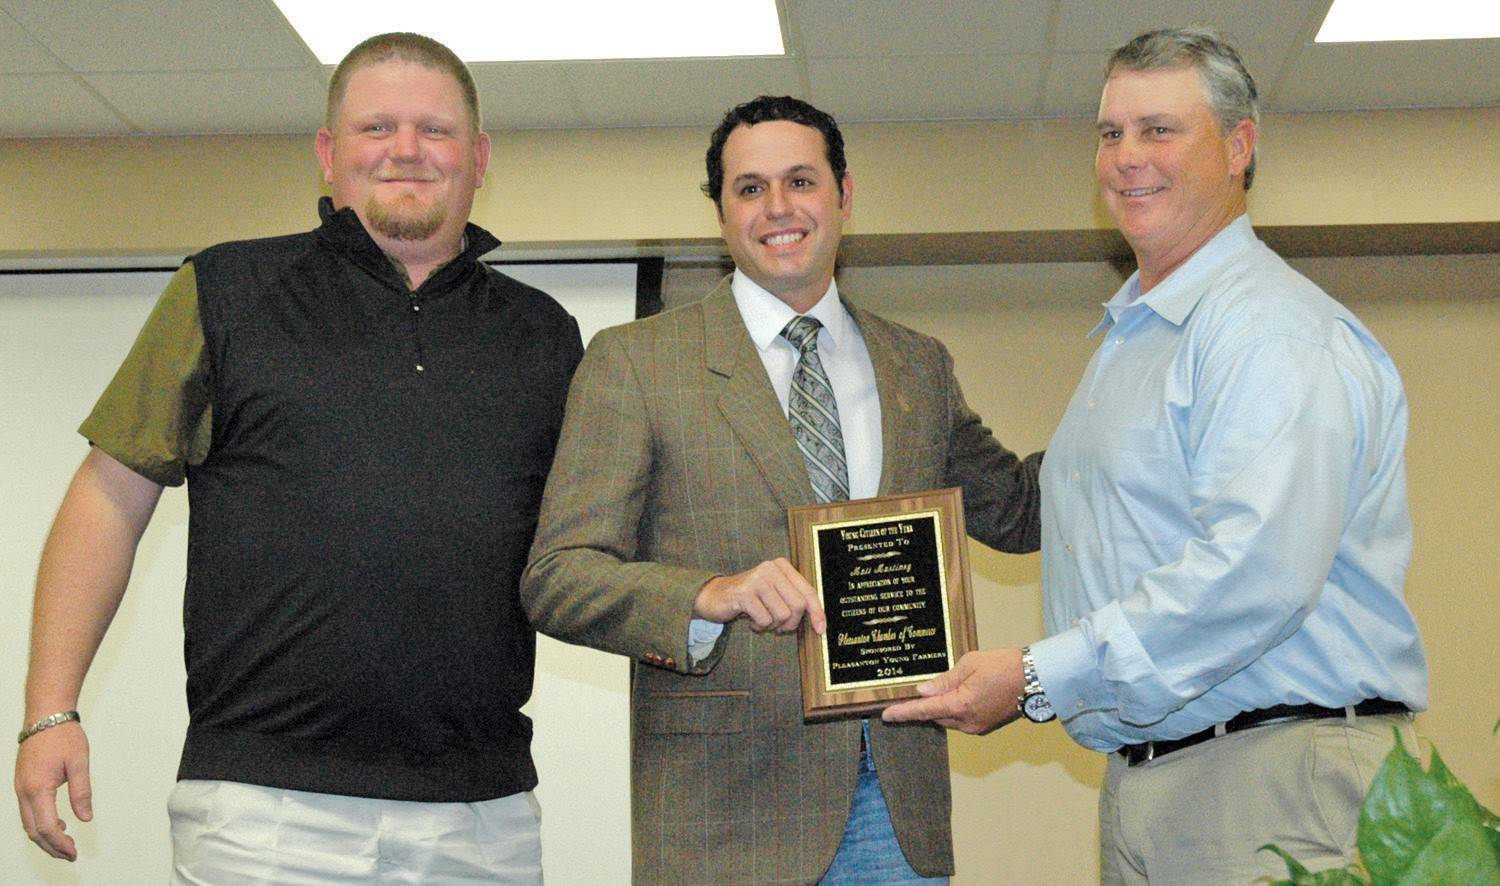 Matt Martinez was awarded Young Citizen of the Year at the Pleasanton Chamber banquet. Wade McBee, (left) representing the Pleasanton Young Farmers,(right) presented the award with Chamber President Chico Cox assisting.